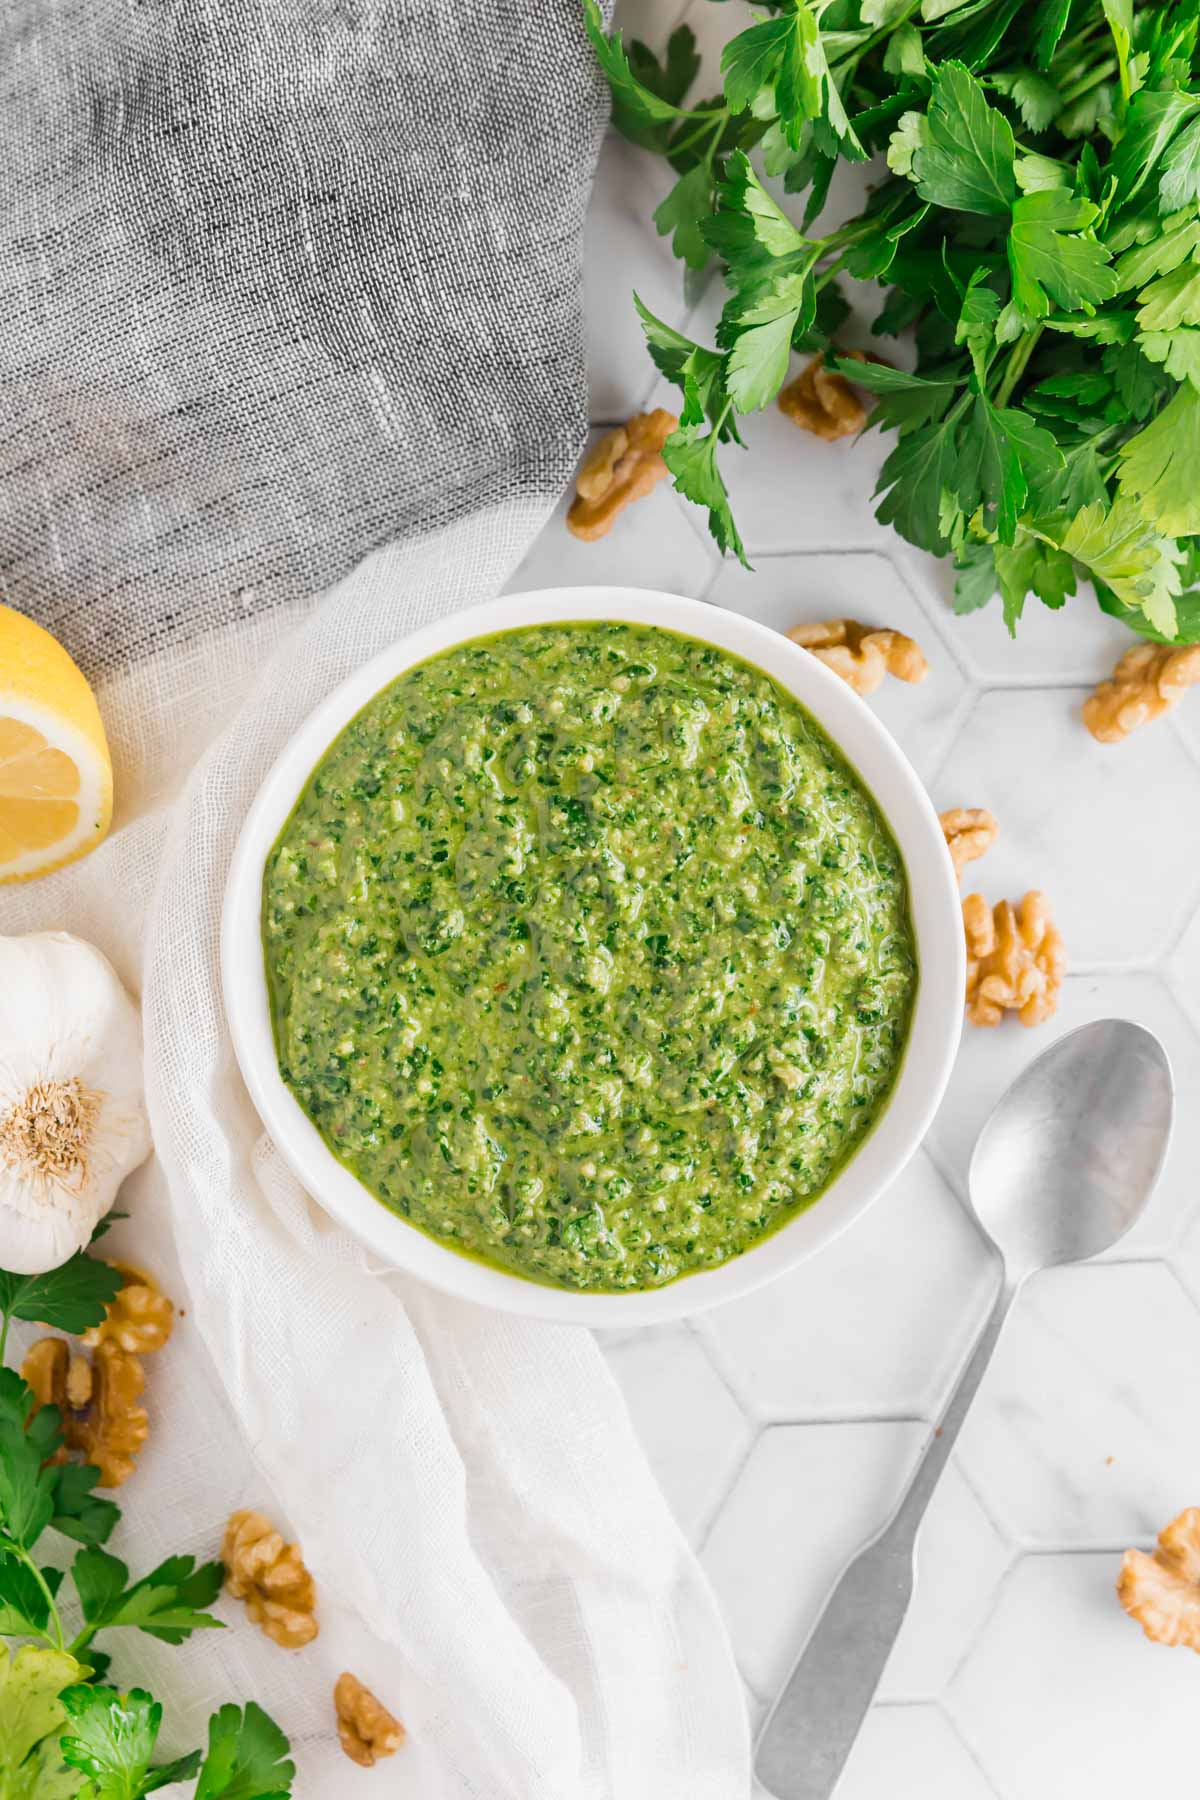 An overhead photo of a small bowl filled with vegan parsley walnut pesto with a spoon, fresh parsley, walnuts, garlic and lemon on a table.